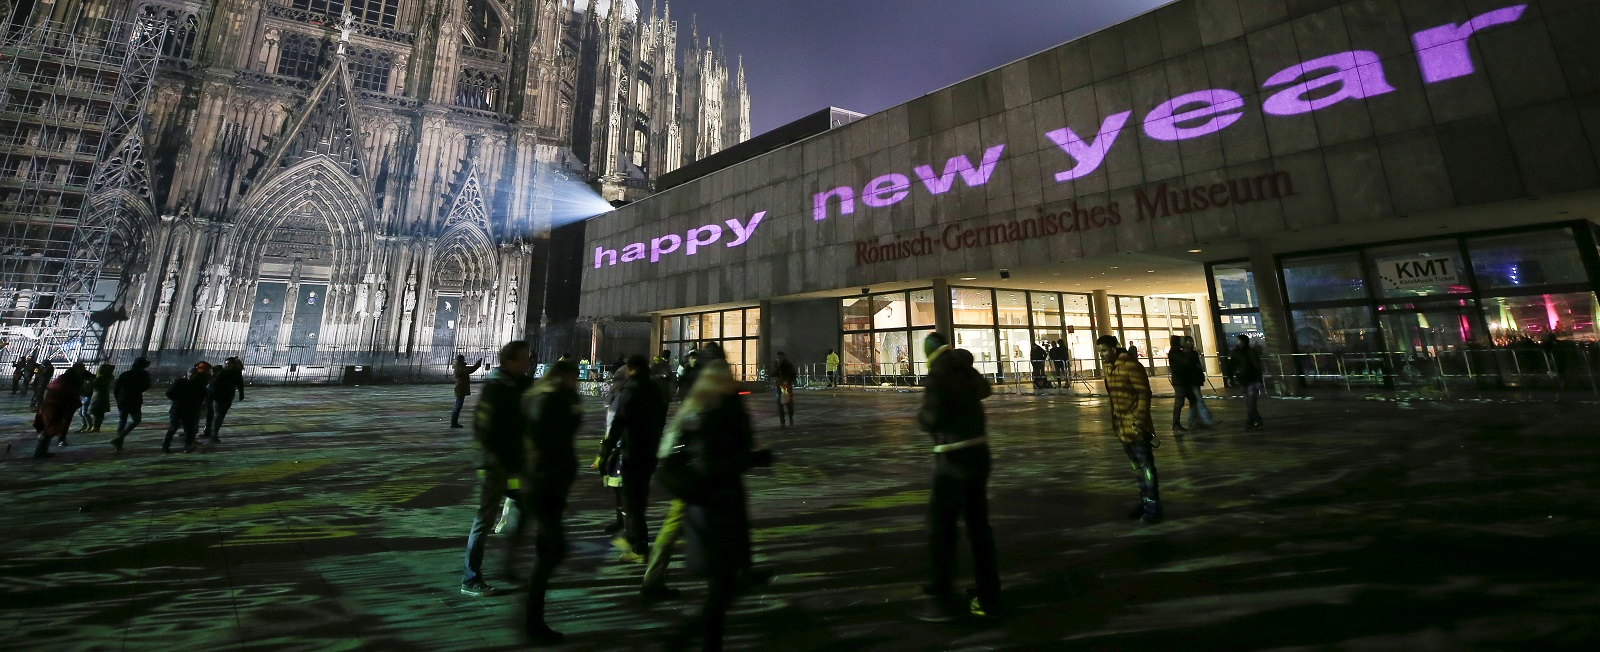 Visitors celebrate New Year's Eve in front of Cologne Cathedral, Germany (Photo by Maja Hitij/Getty Images)